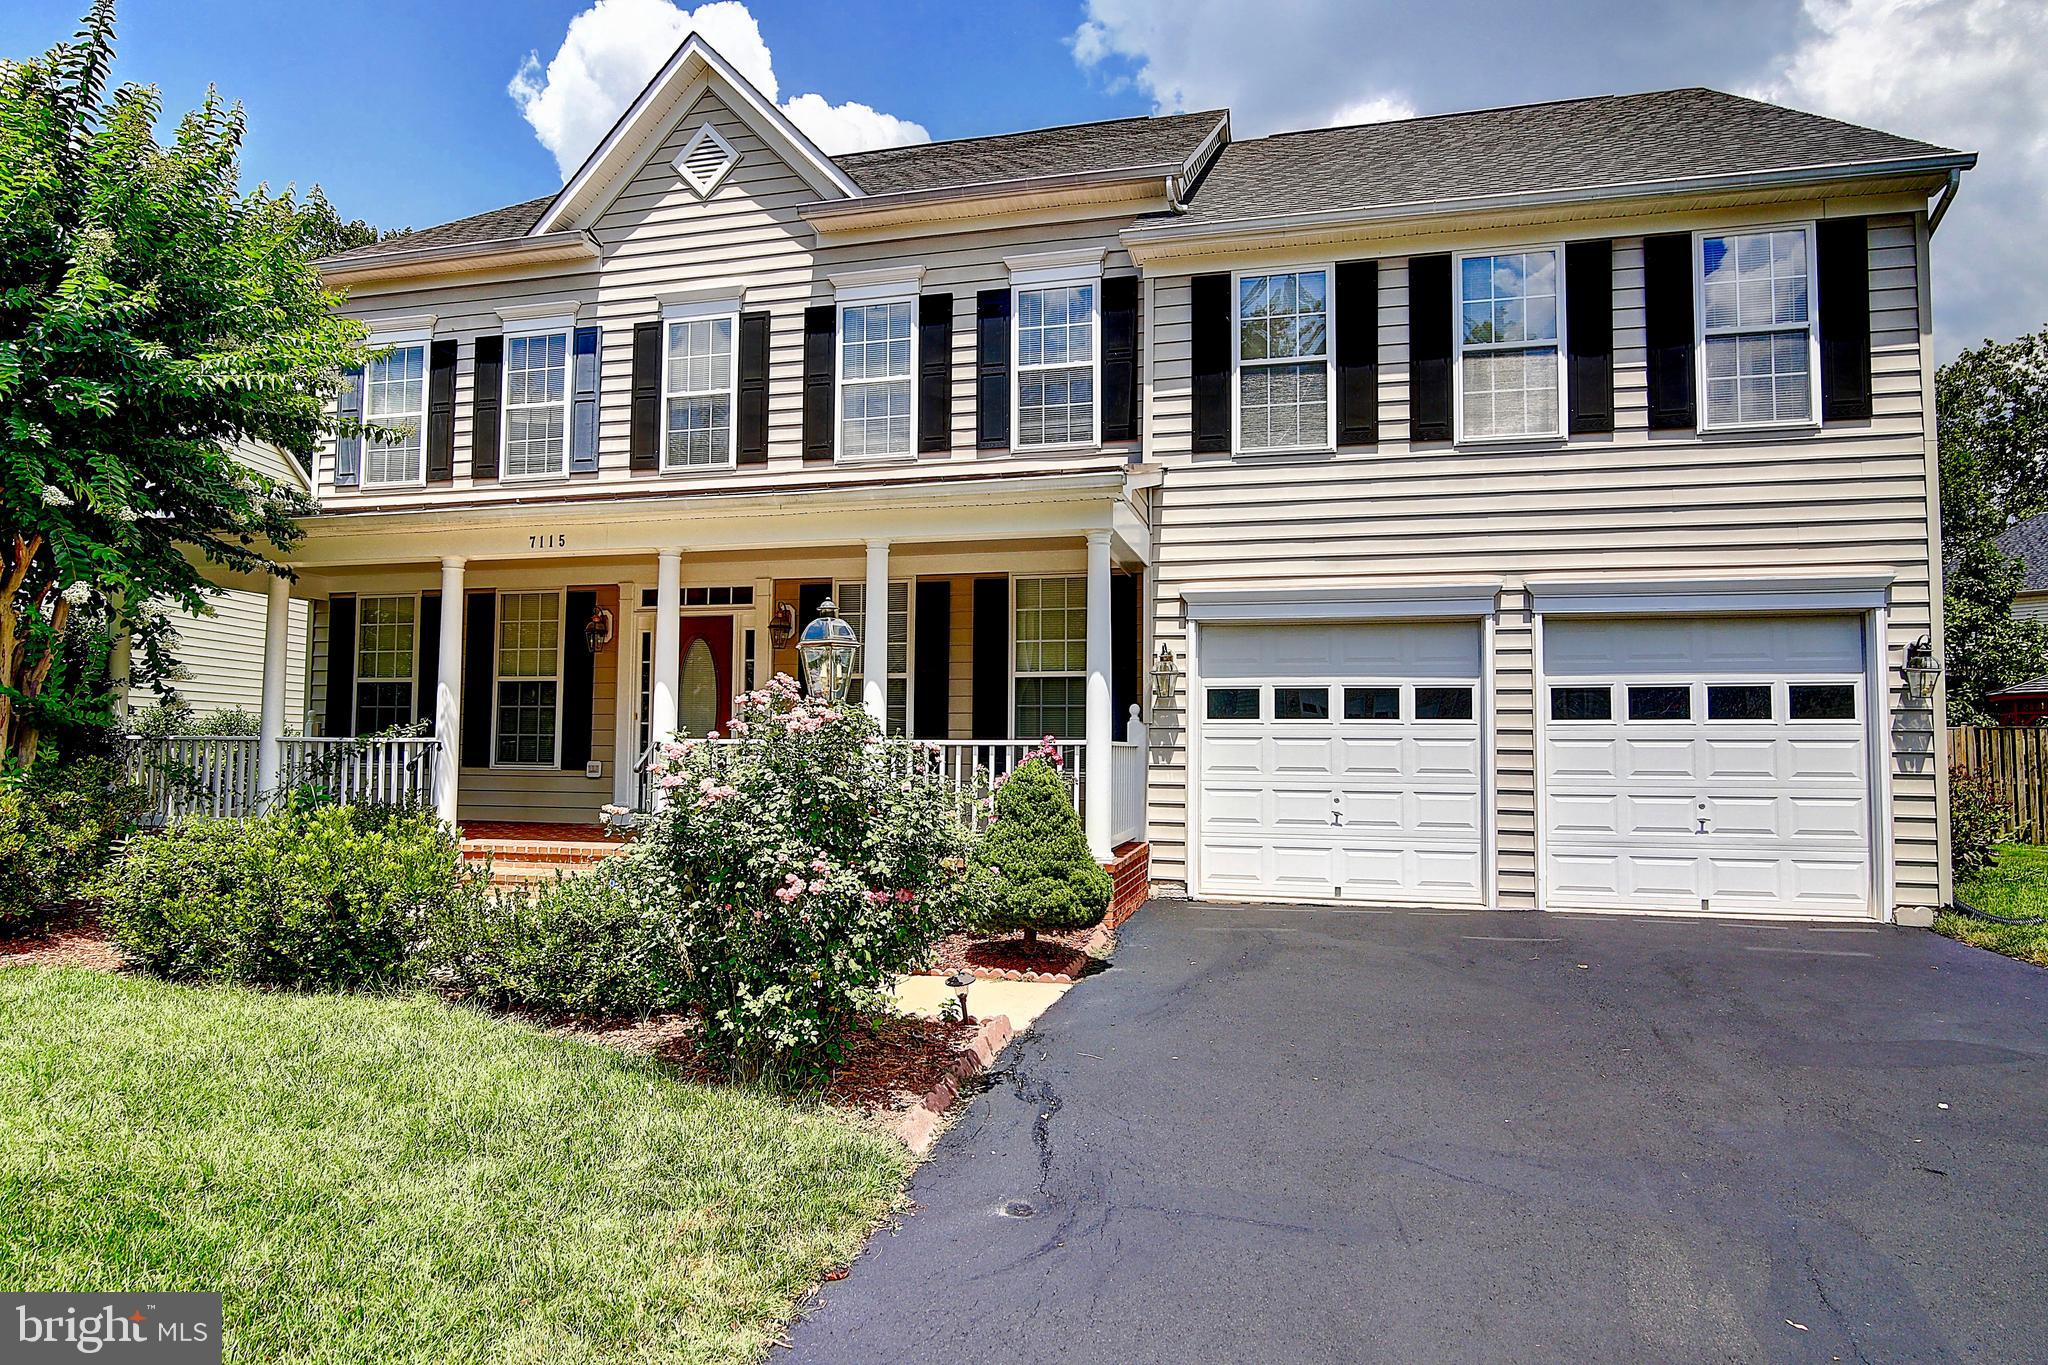 SELLERS WILL REPLACE ALL CARPETS WITH ACCEPTED CONTRACT, Beautiful colonial with two-story living room and stunning custom stone fireplace. Hardwoods throughout main level, eat-in kitchen with island and formal dining room. Escape to the grand master suite at the end of a busy day, with cathedral ceilings and an en suite master bath with soaking tub and separate shower. The finished basement features a full bath and kitchen area with sink and dishwasher, perfect for guests or entertaining. Rear deck and large lot. This home has it all! Welcome Home!